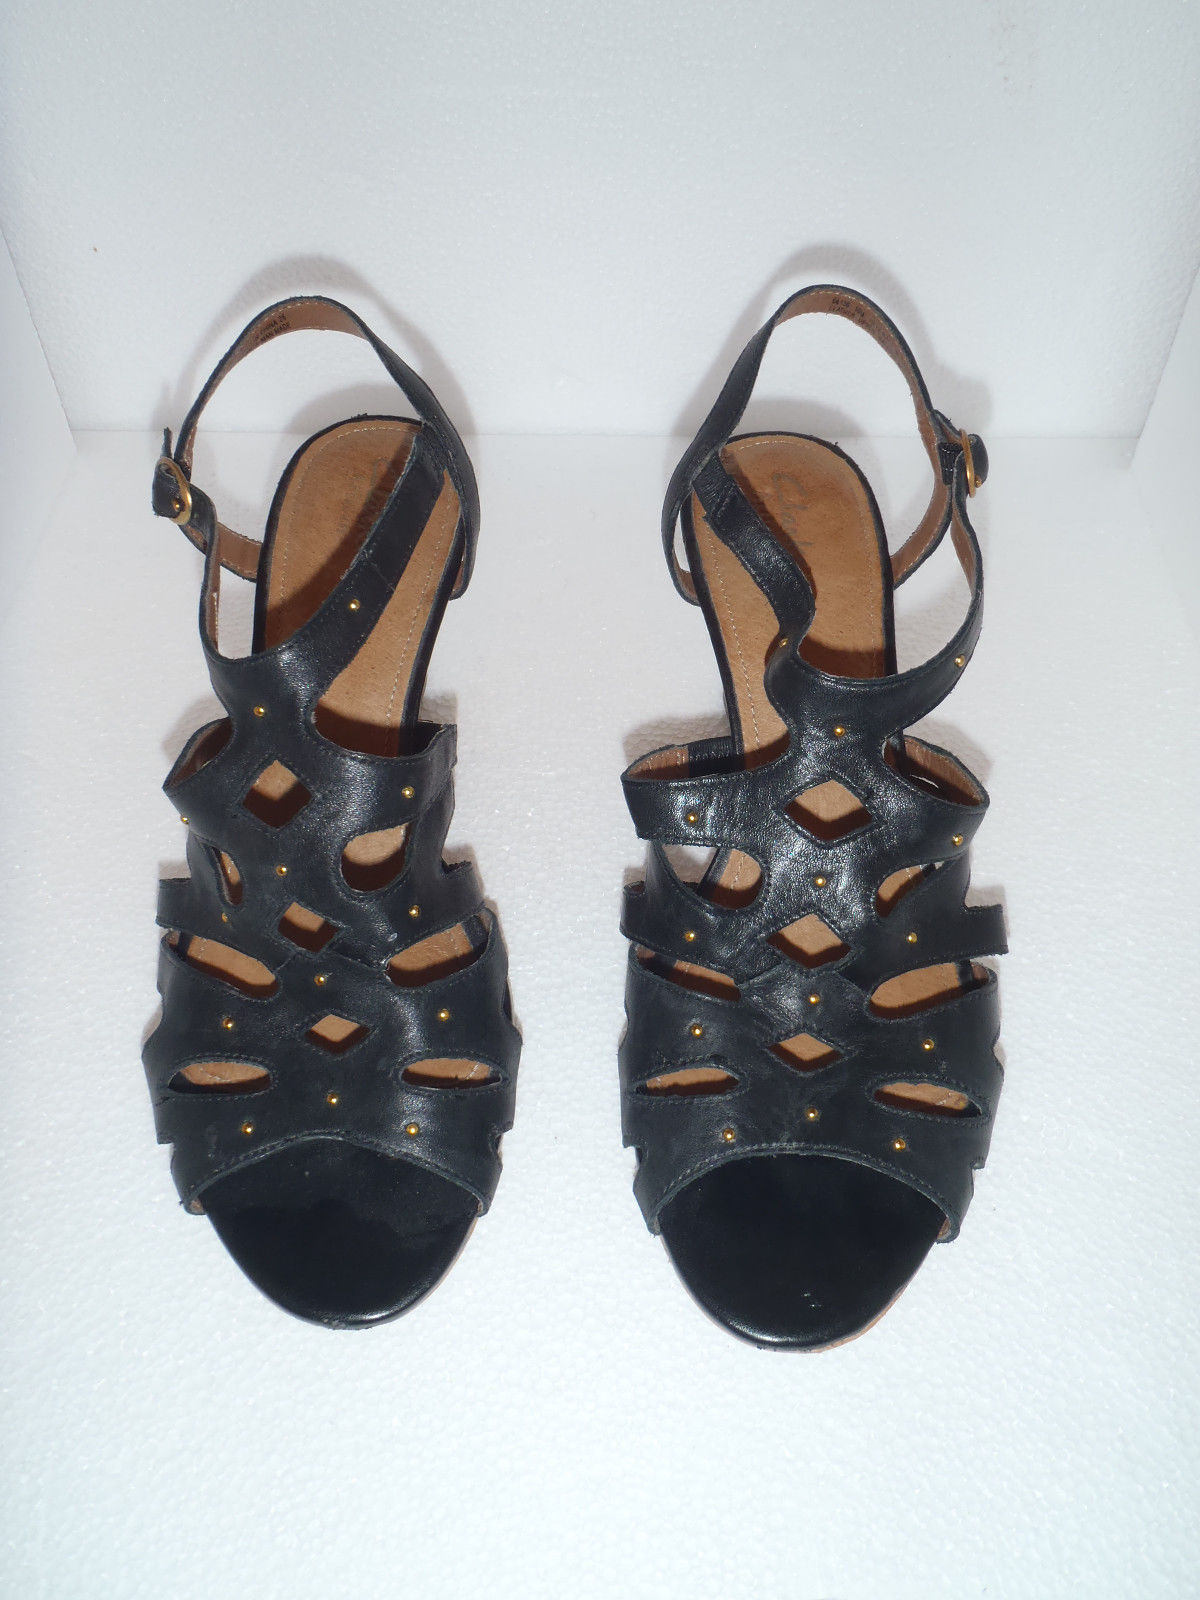 40185965dbd3 57. 57. Previous. Clarks Artisan 10 M Ankle Black Leather Gold Studded Cork  Wedge SANDALS 64130